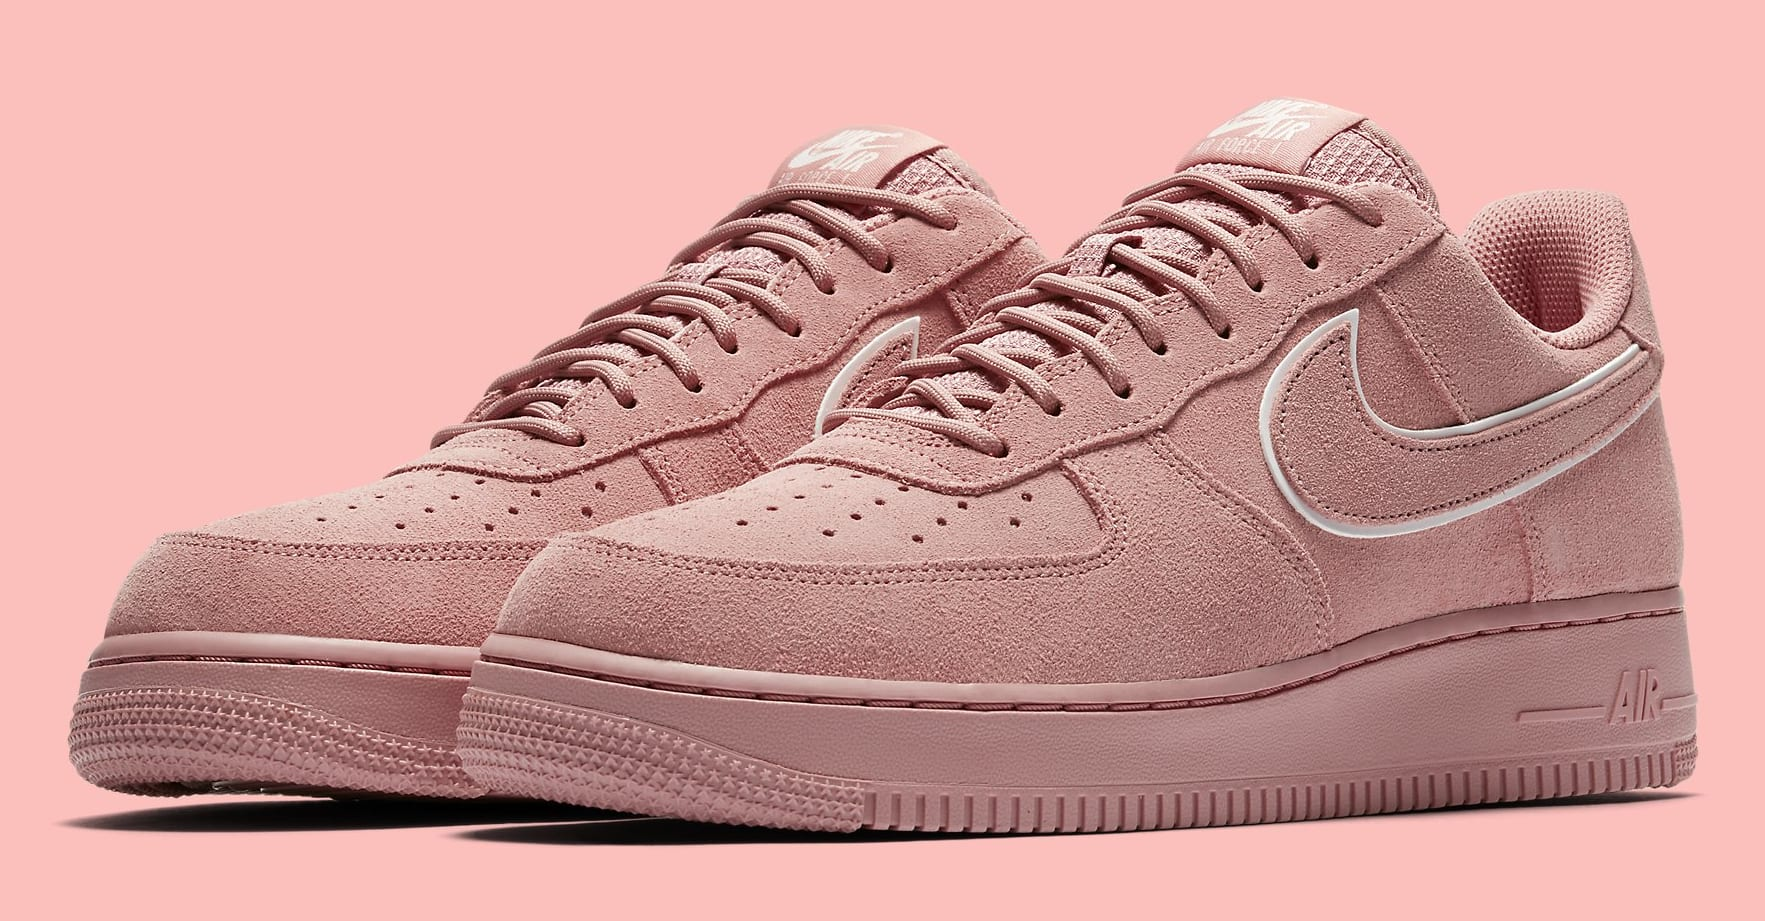 2d4bbb1c ... official store image via nike nike air force 1 suede aa1117 601 pair  95f0d 04b6e